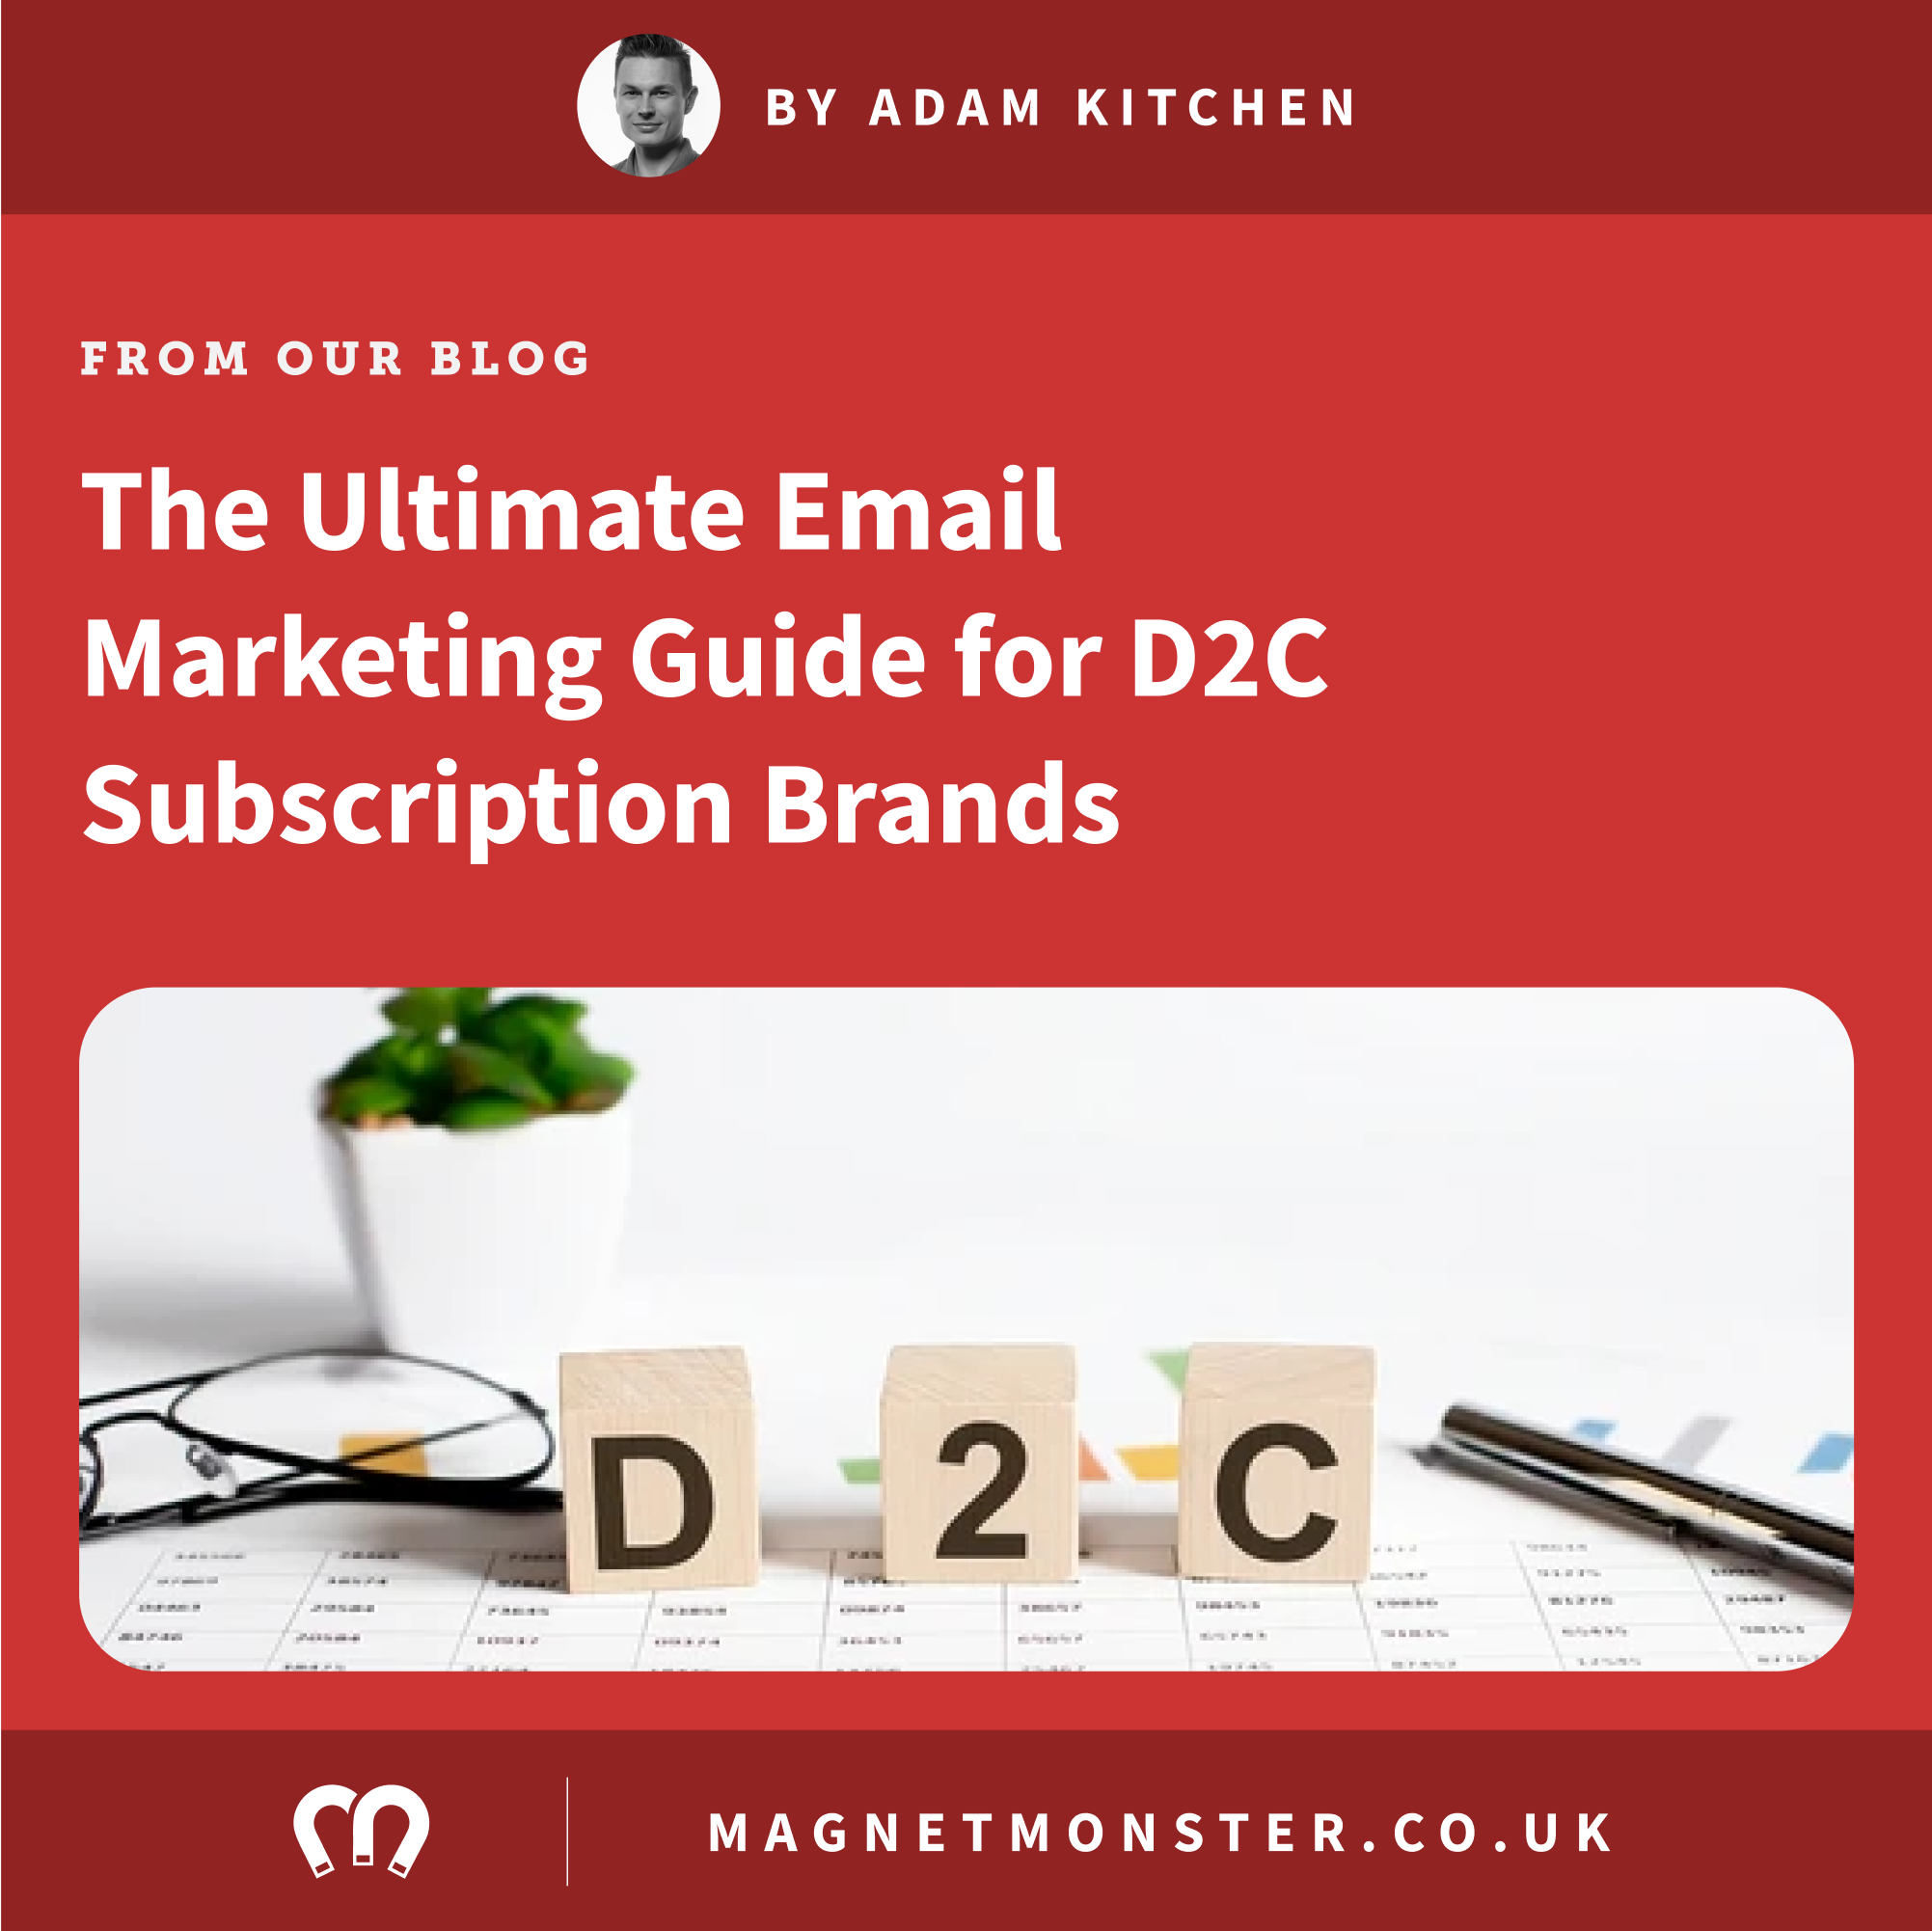 The Ultimate Email Marketing Guide for D2C Subscription Brands